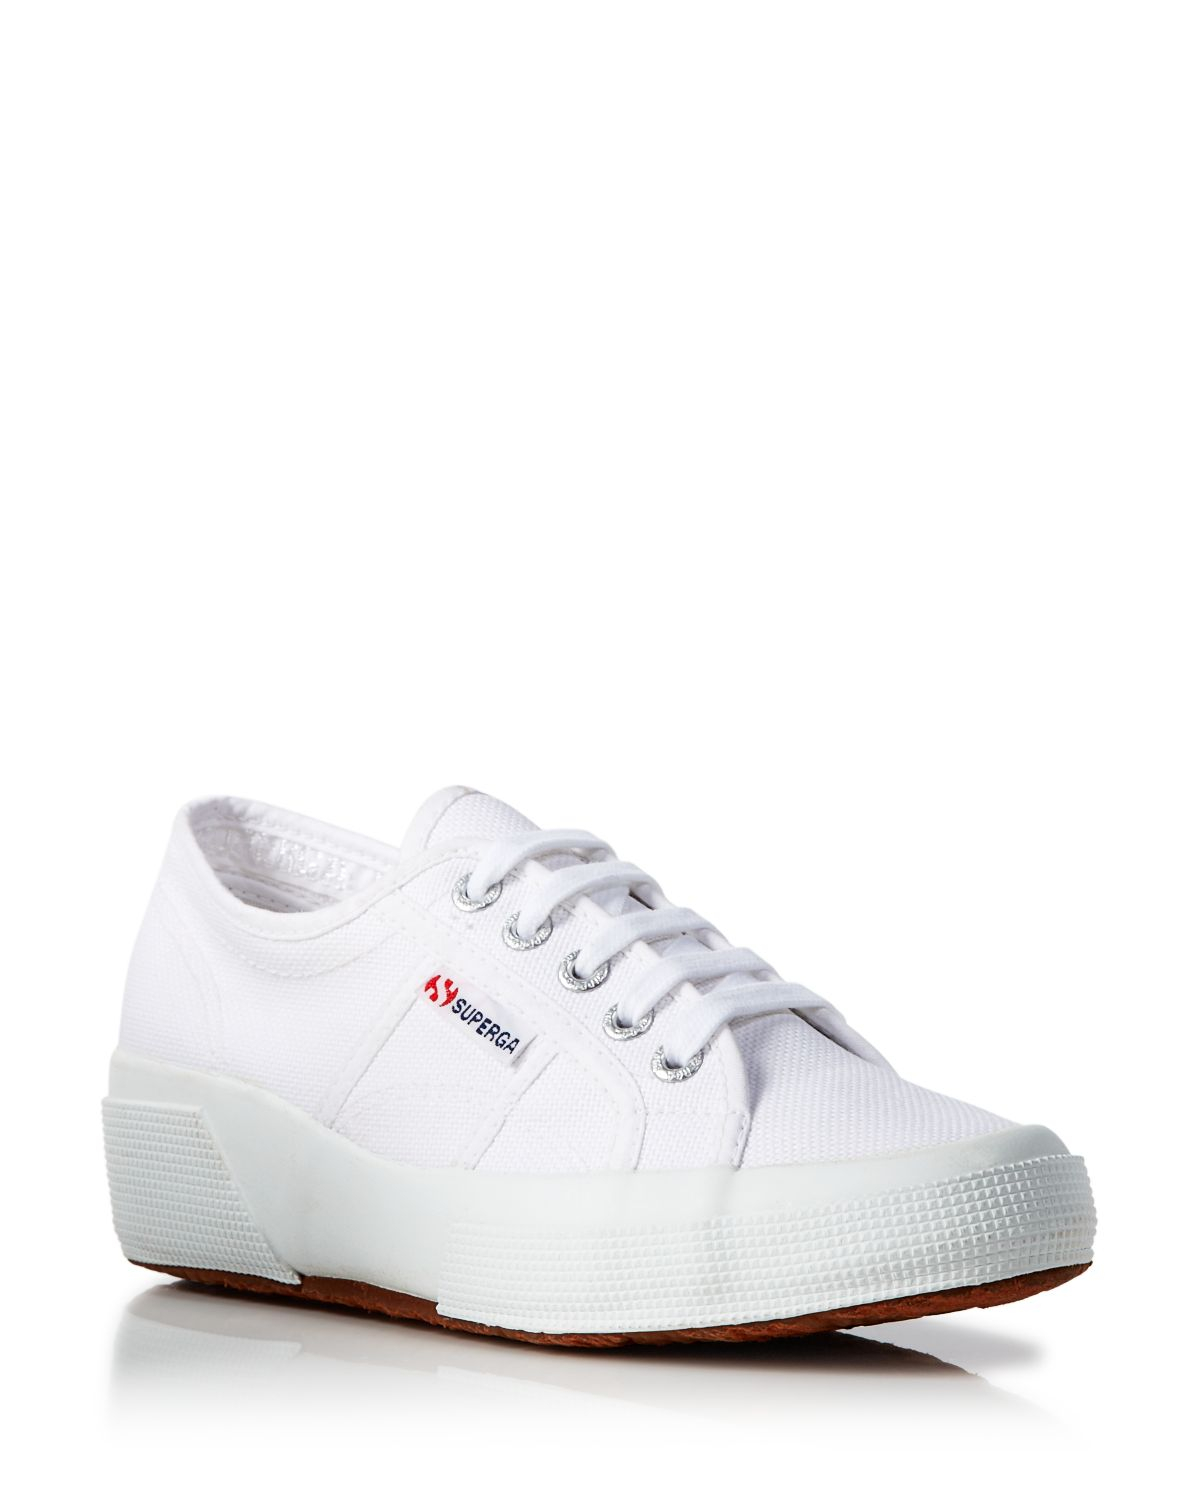 Cheap Wedge Sneaker Shoes